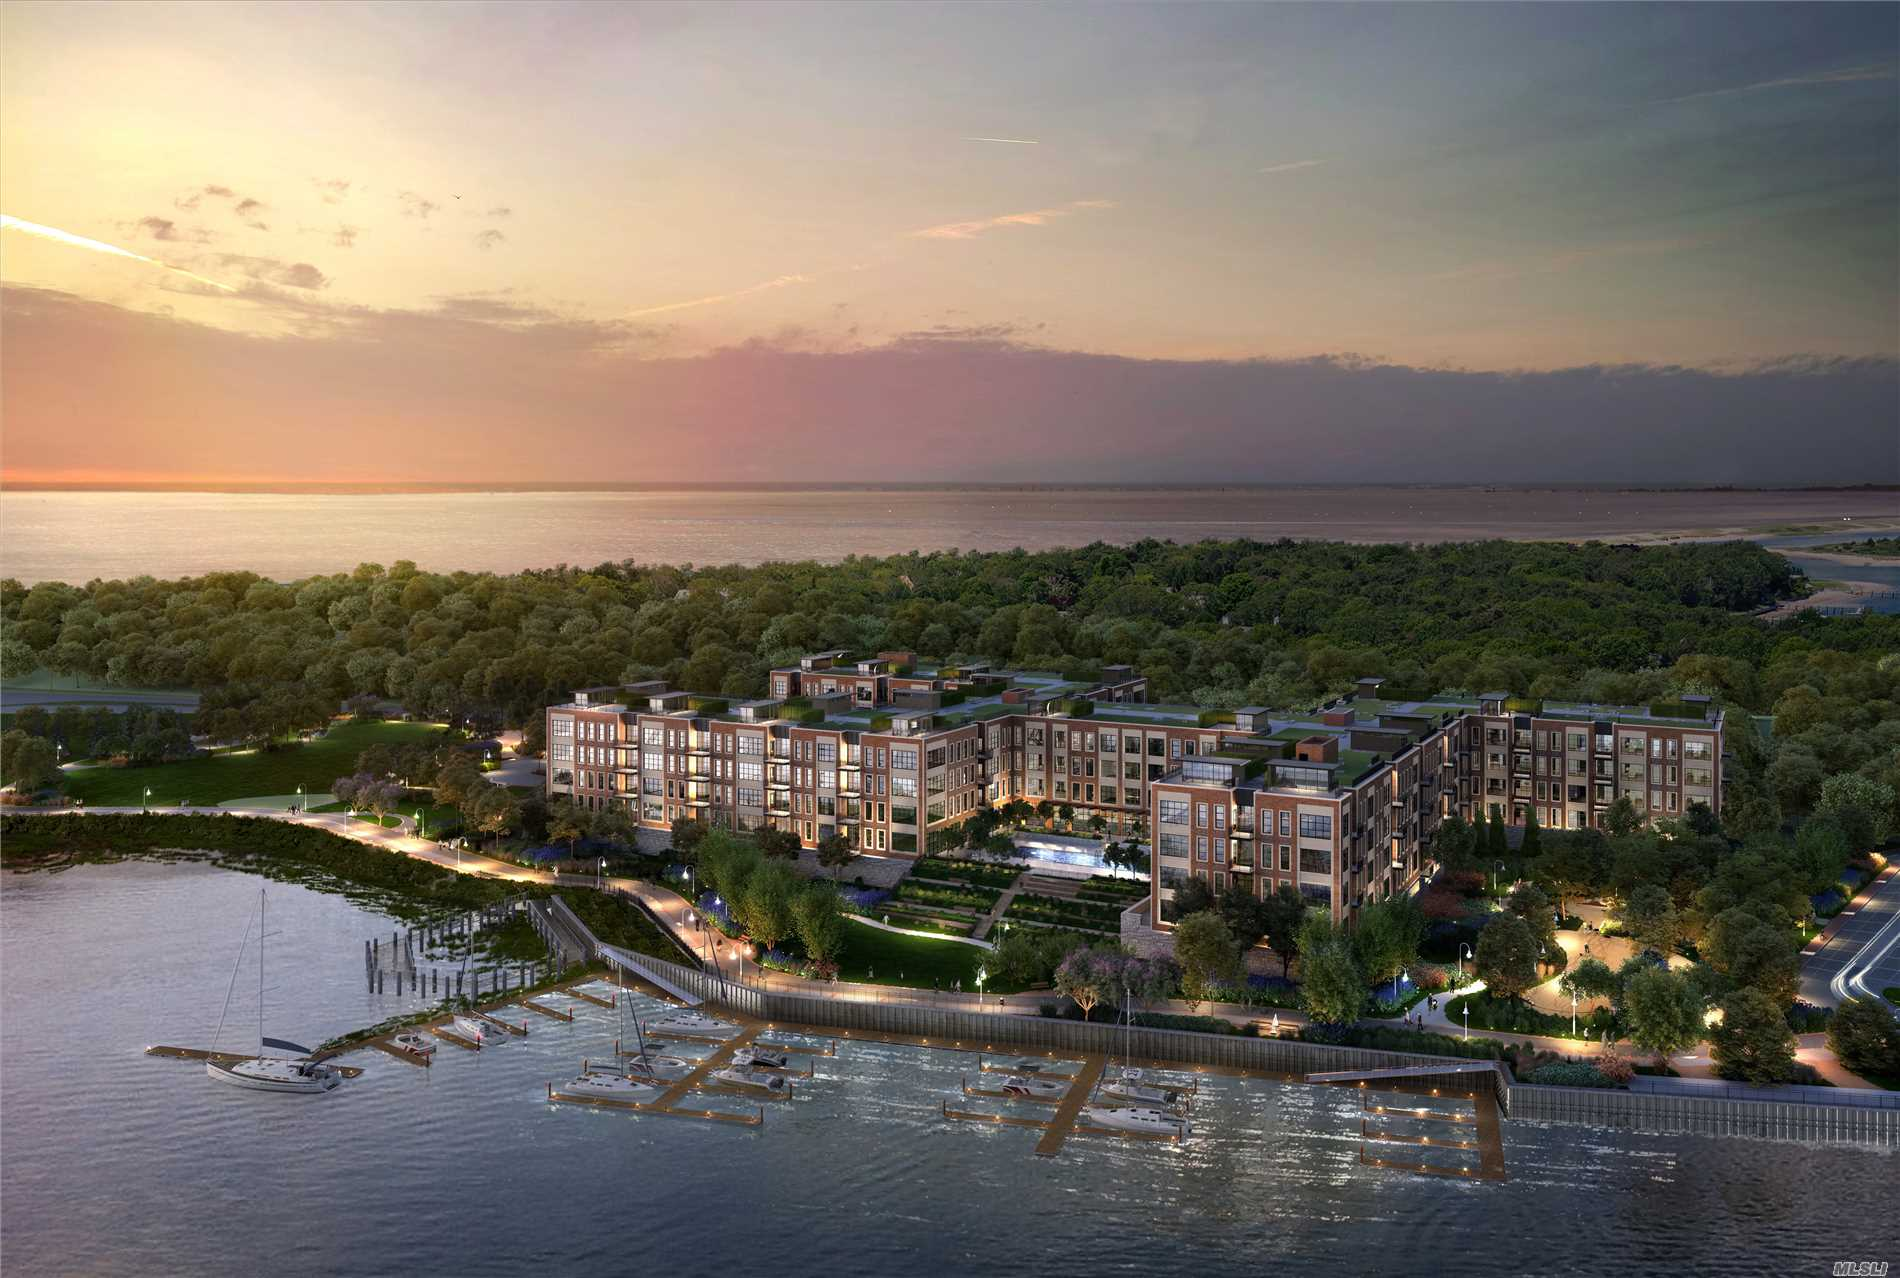 Property for sale at 100 Garvies Point Road # 1241, Glen Cove NY 11542, Glen Cove,  New York 11542